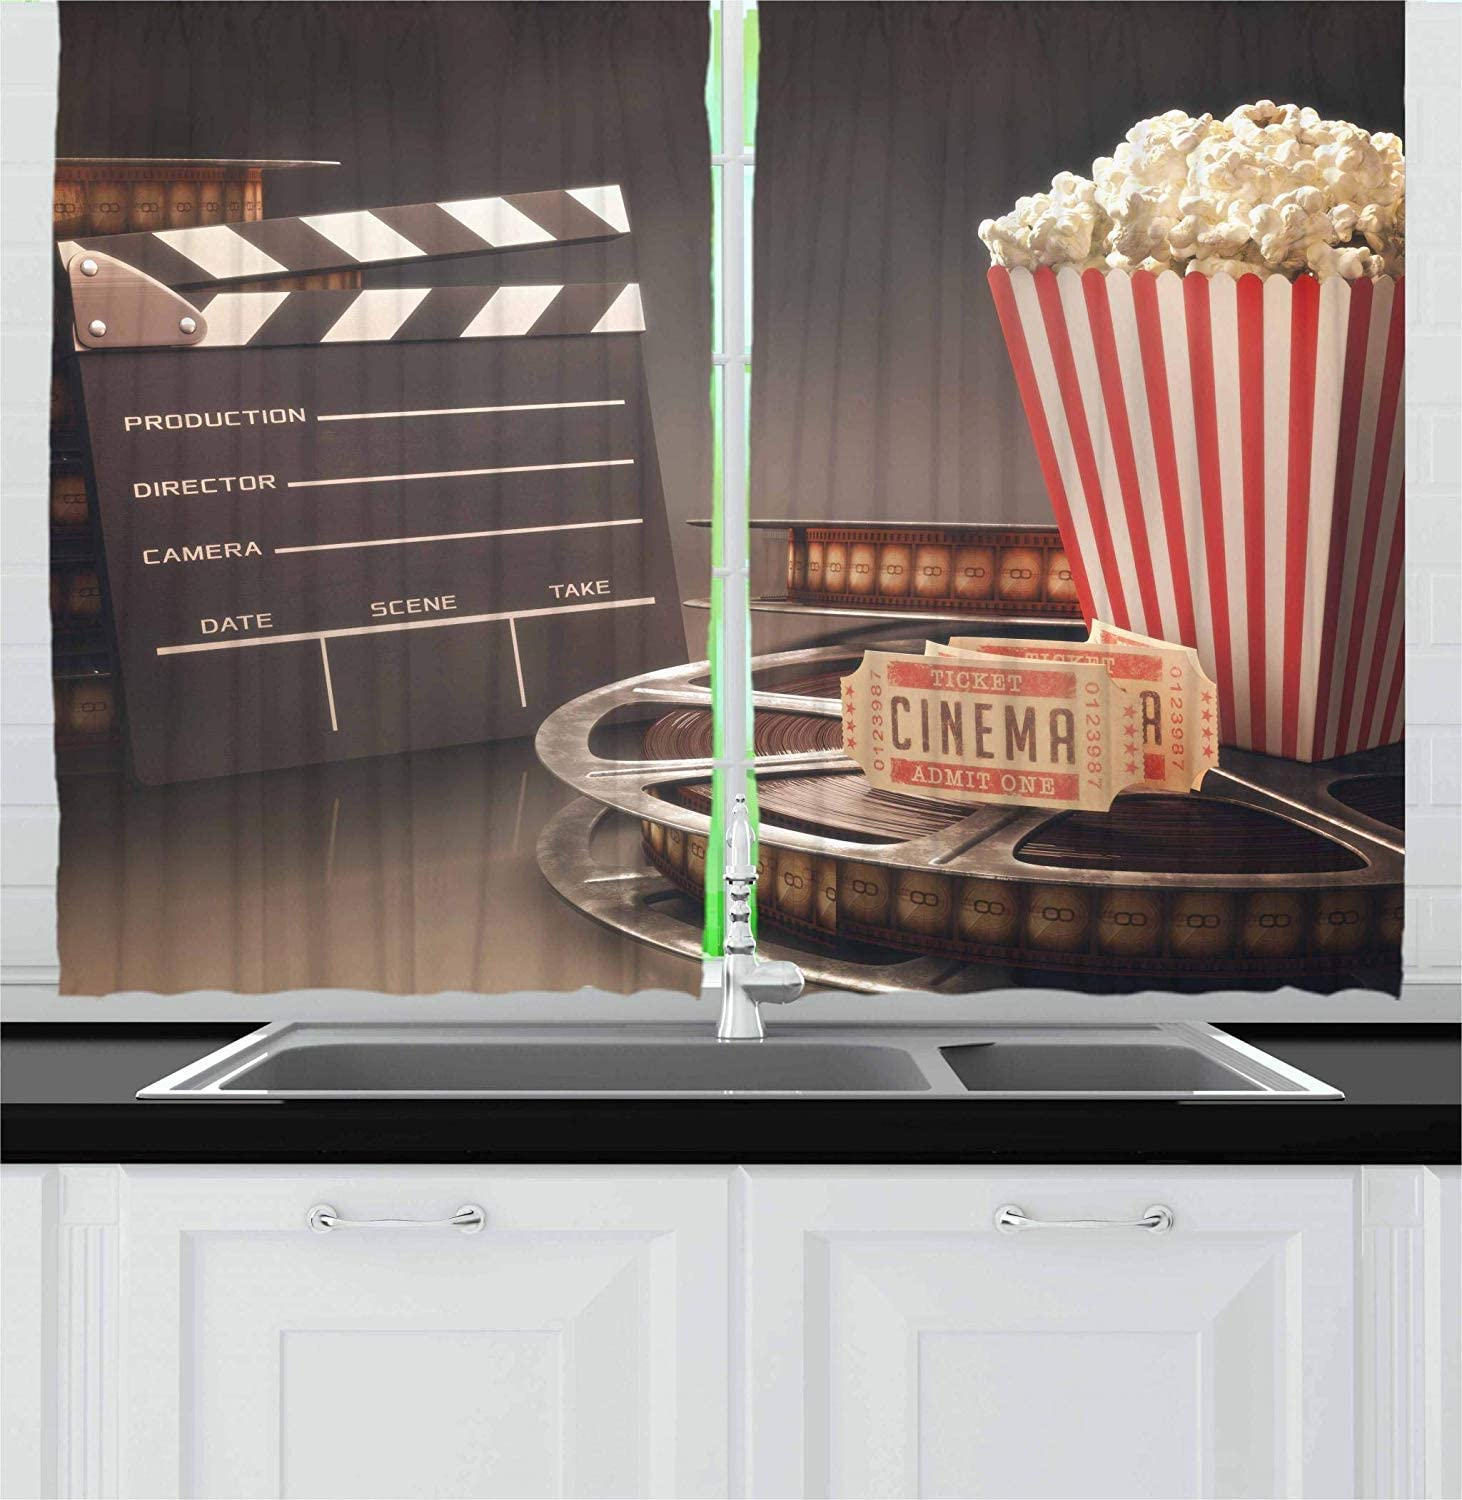 Amazon Com Futuregrace Movie Theater Kitchen Blackout Curtains Old Fashion Entertainment Objects Related To Cinema Film Reel Motion Picture Darkening Window Curtains 2 Pancels 54 W By 39 L Multicolor Home Kitchen